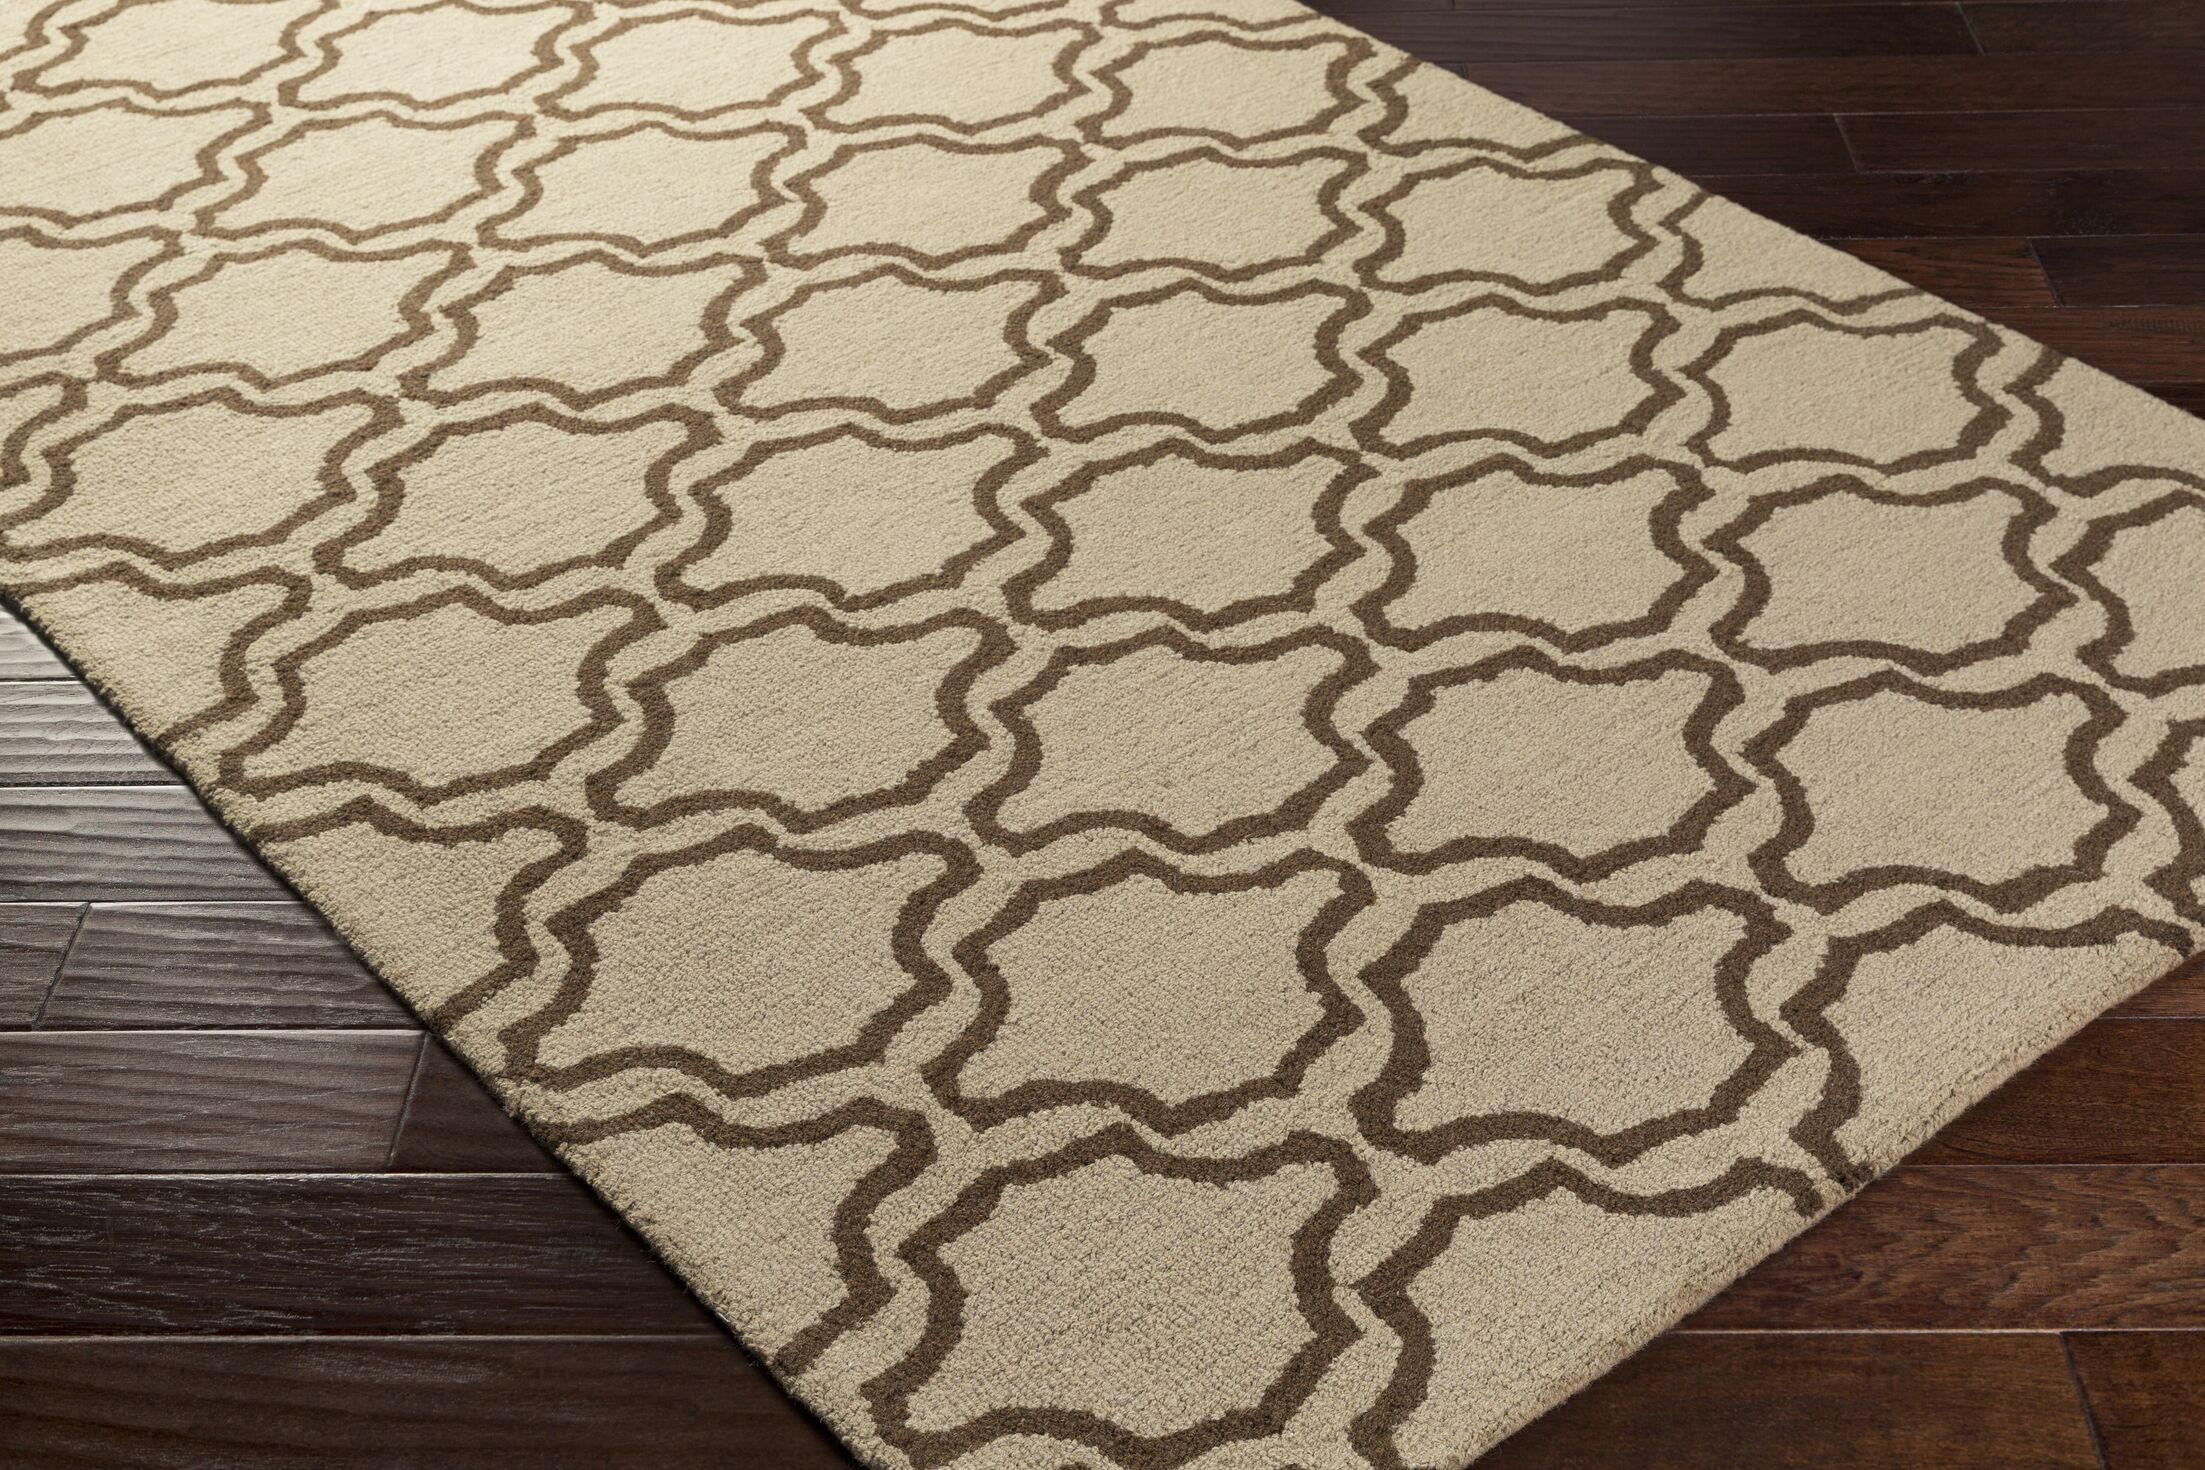 Coulombe Hand-Tufted Beige Area Rug Rug Size: Rectangle 9' x 13'